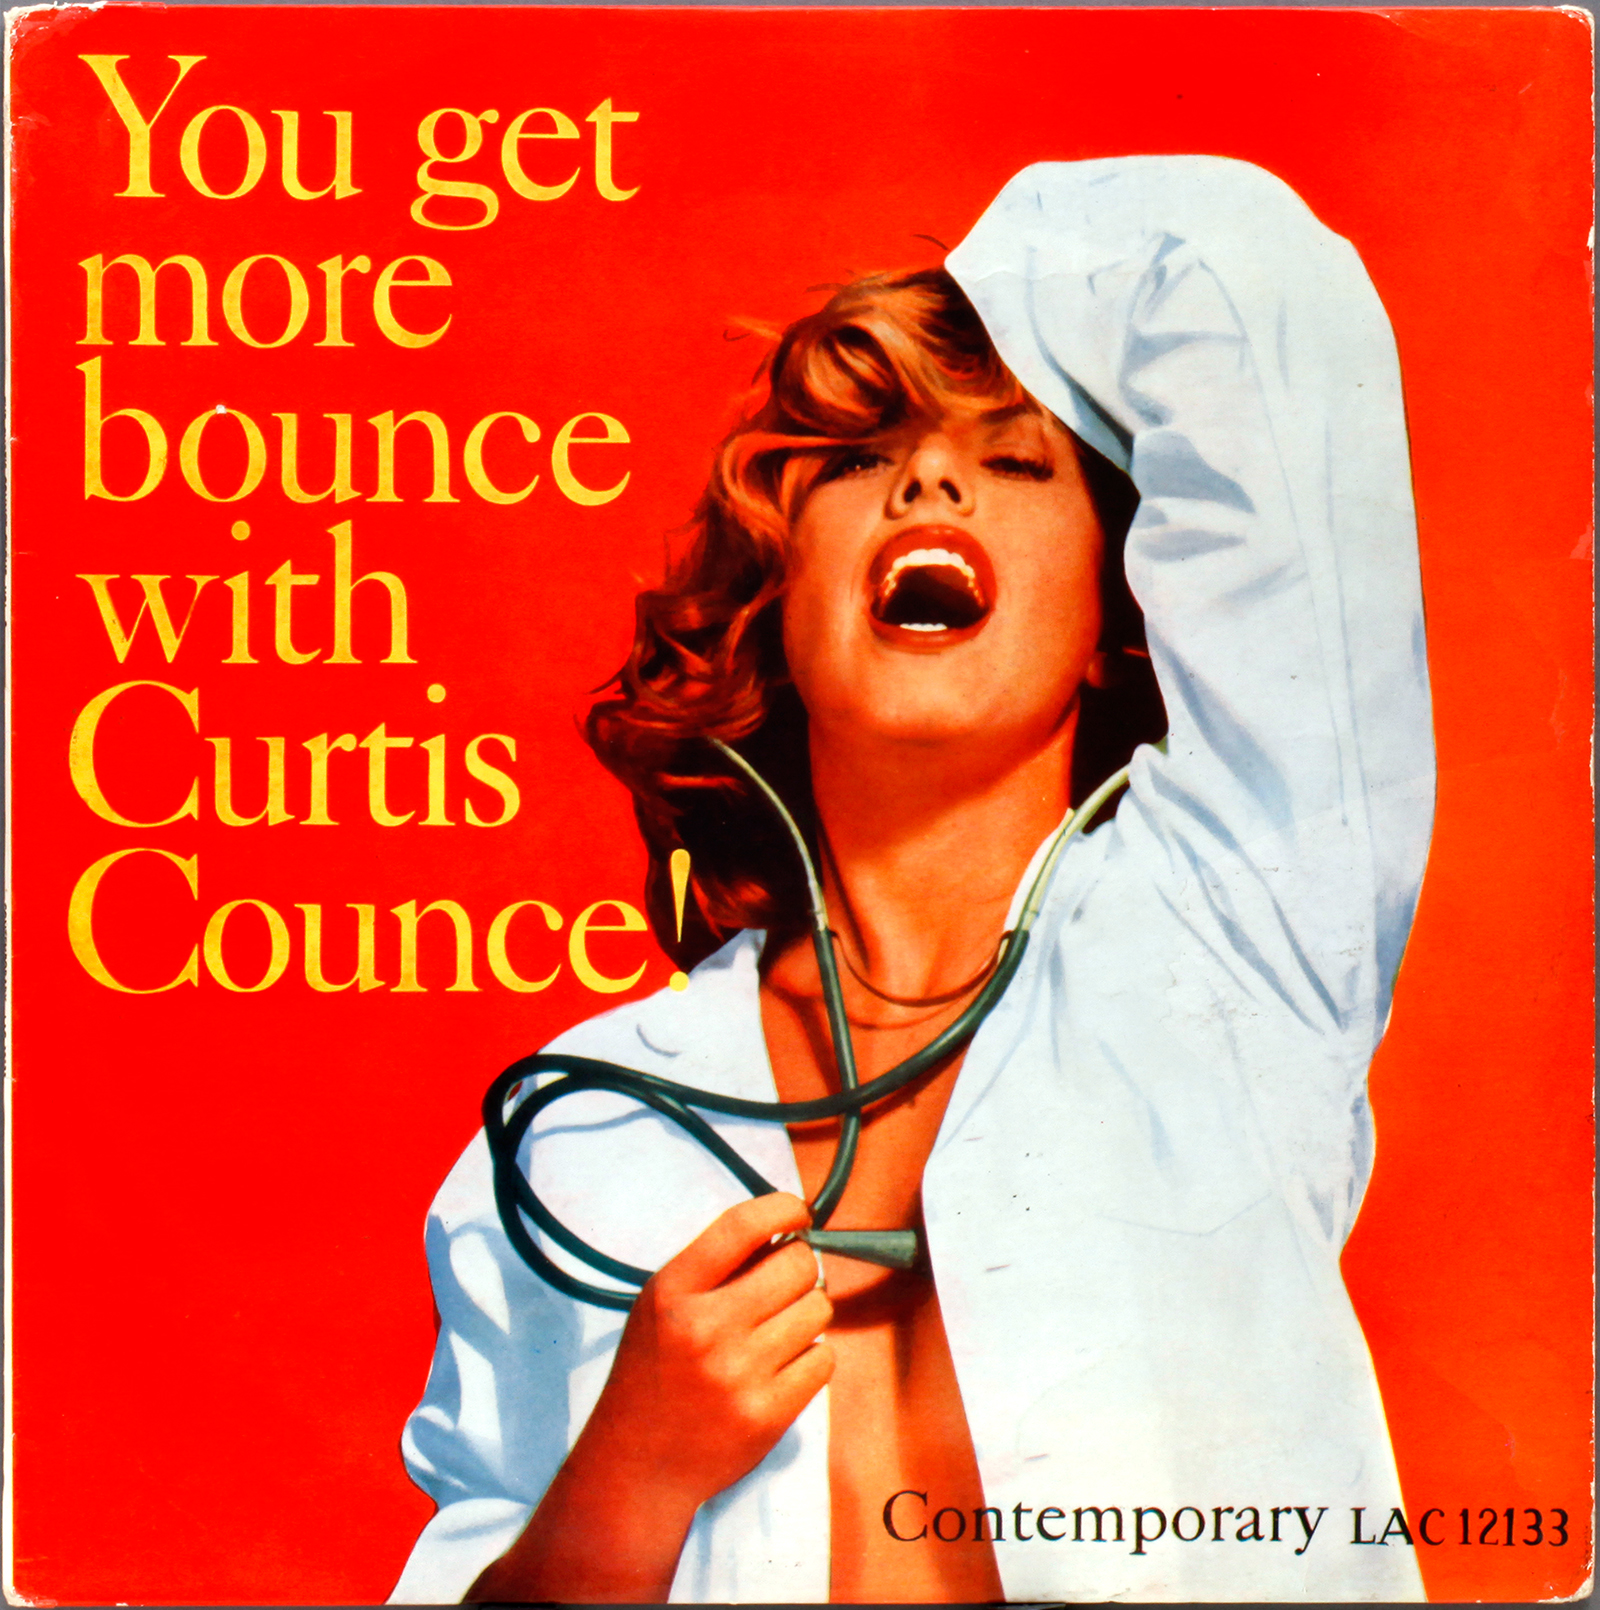 Curtis Counce Group Volume 2 (Counce's Bounce) 1957